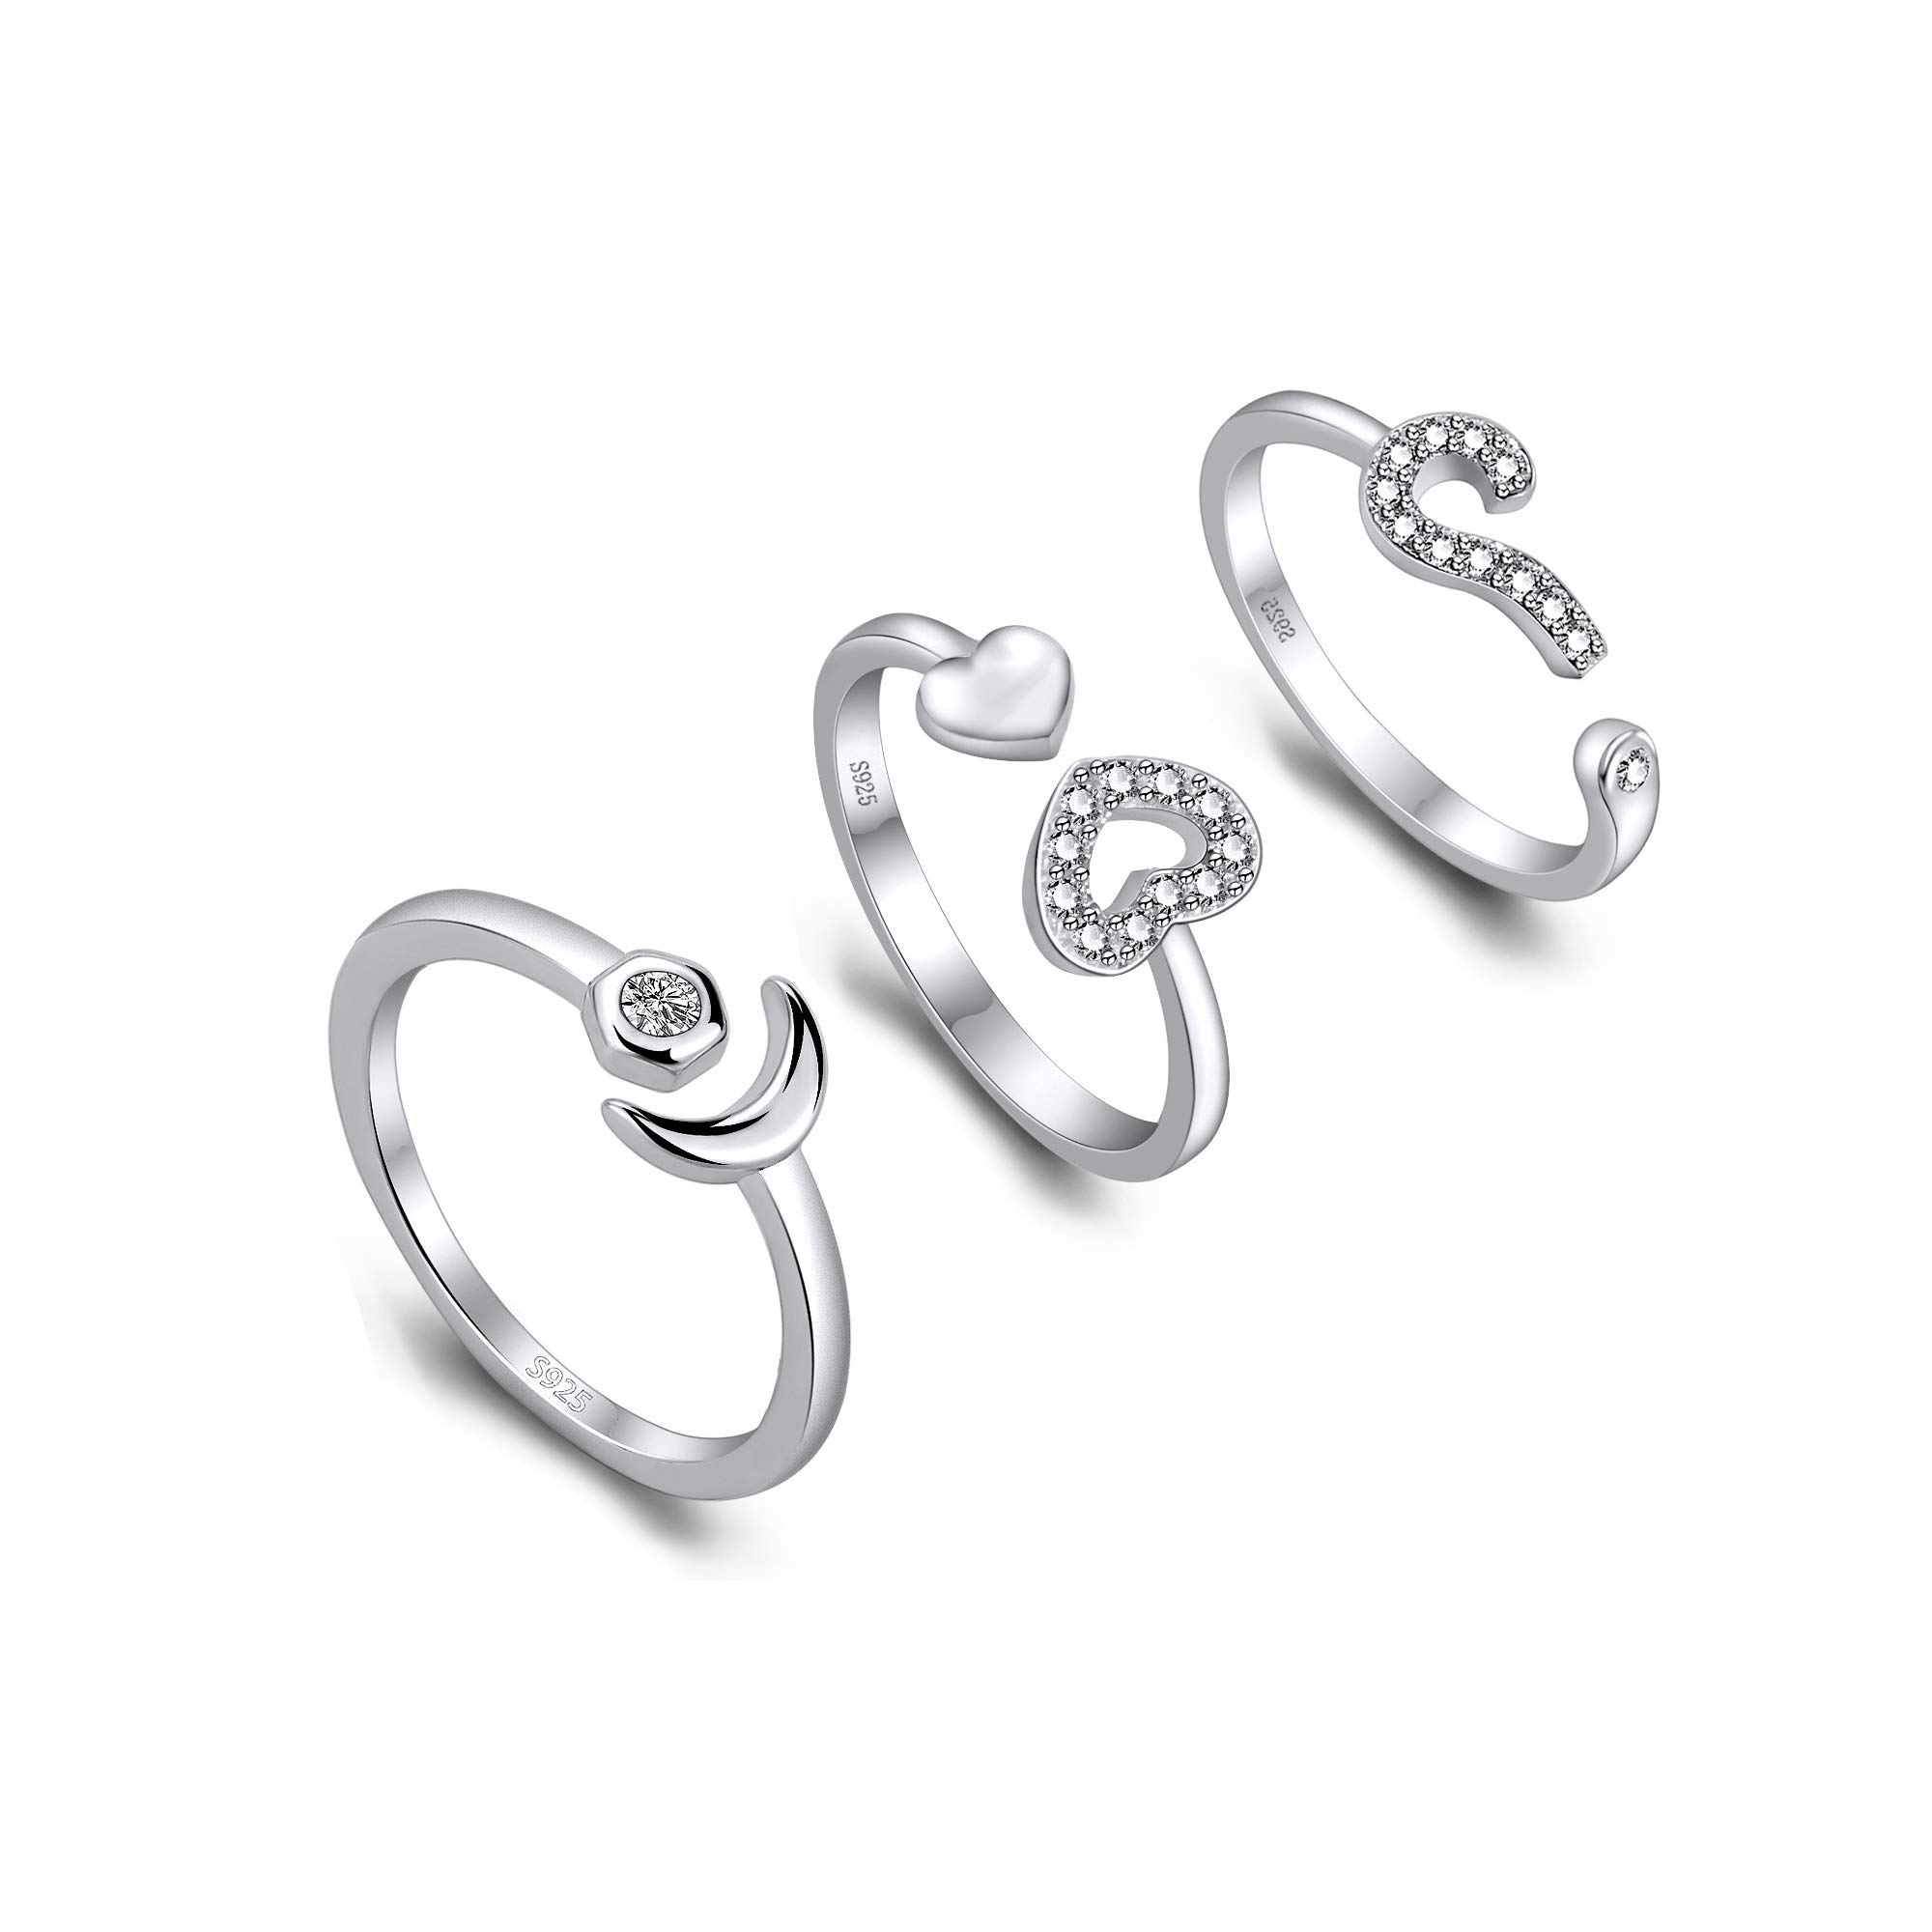 Bifriend 3 Pieces Silver Adjustable Knuckle Ring Open Toe Rings Various Types Knuckle Ring Set for Women and Girl